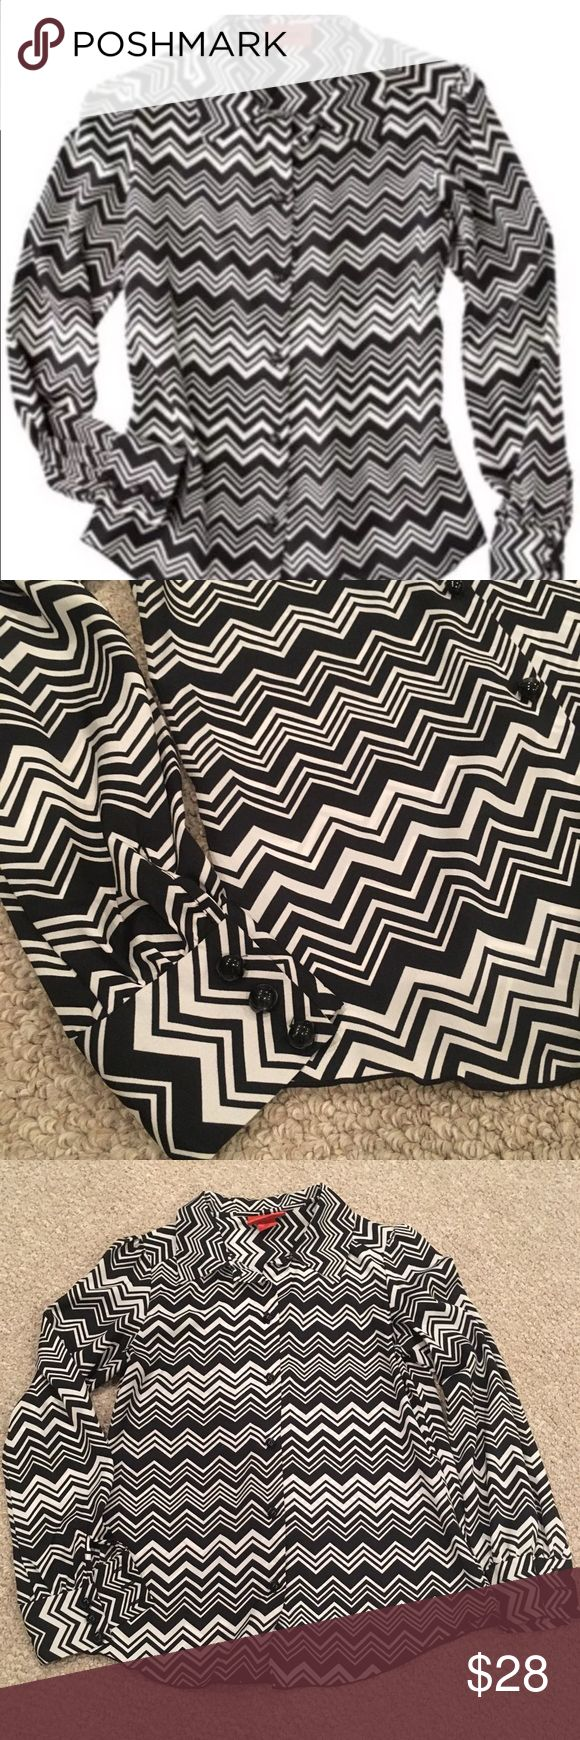 Missoni for Target Black Chevron Blouse Size XS very good condition Missoni Tops Blouses